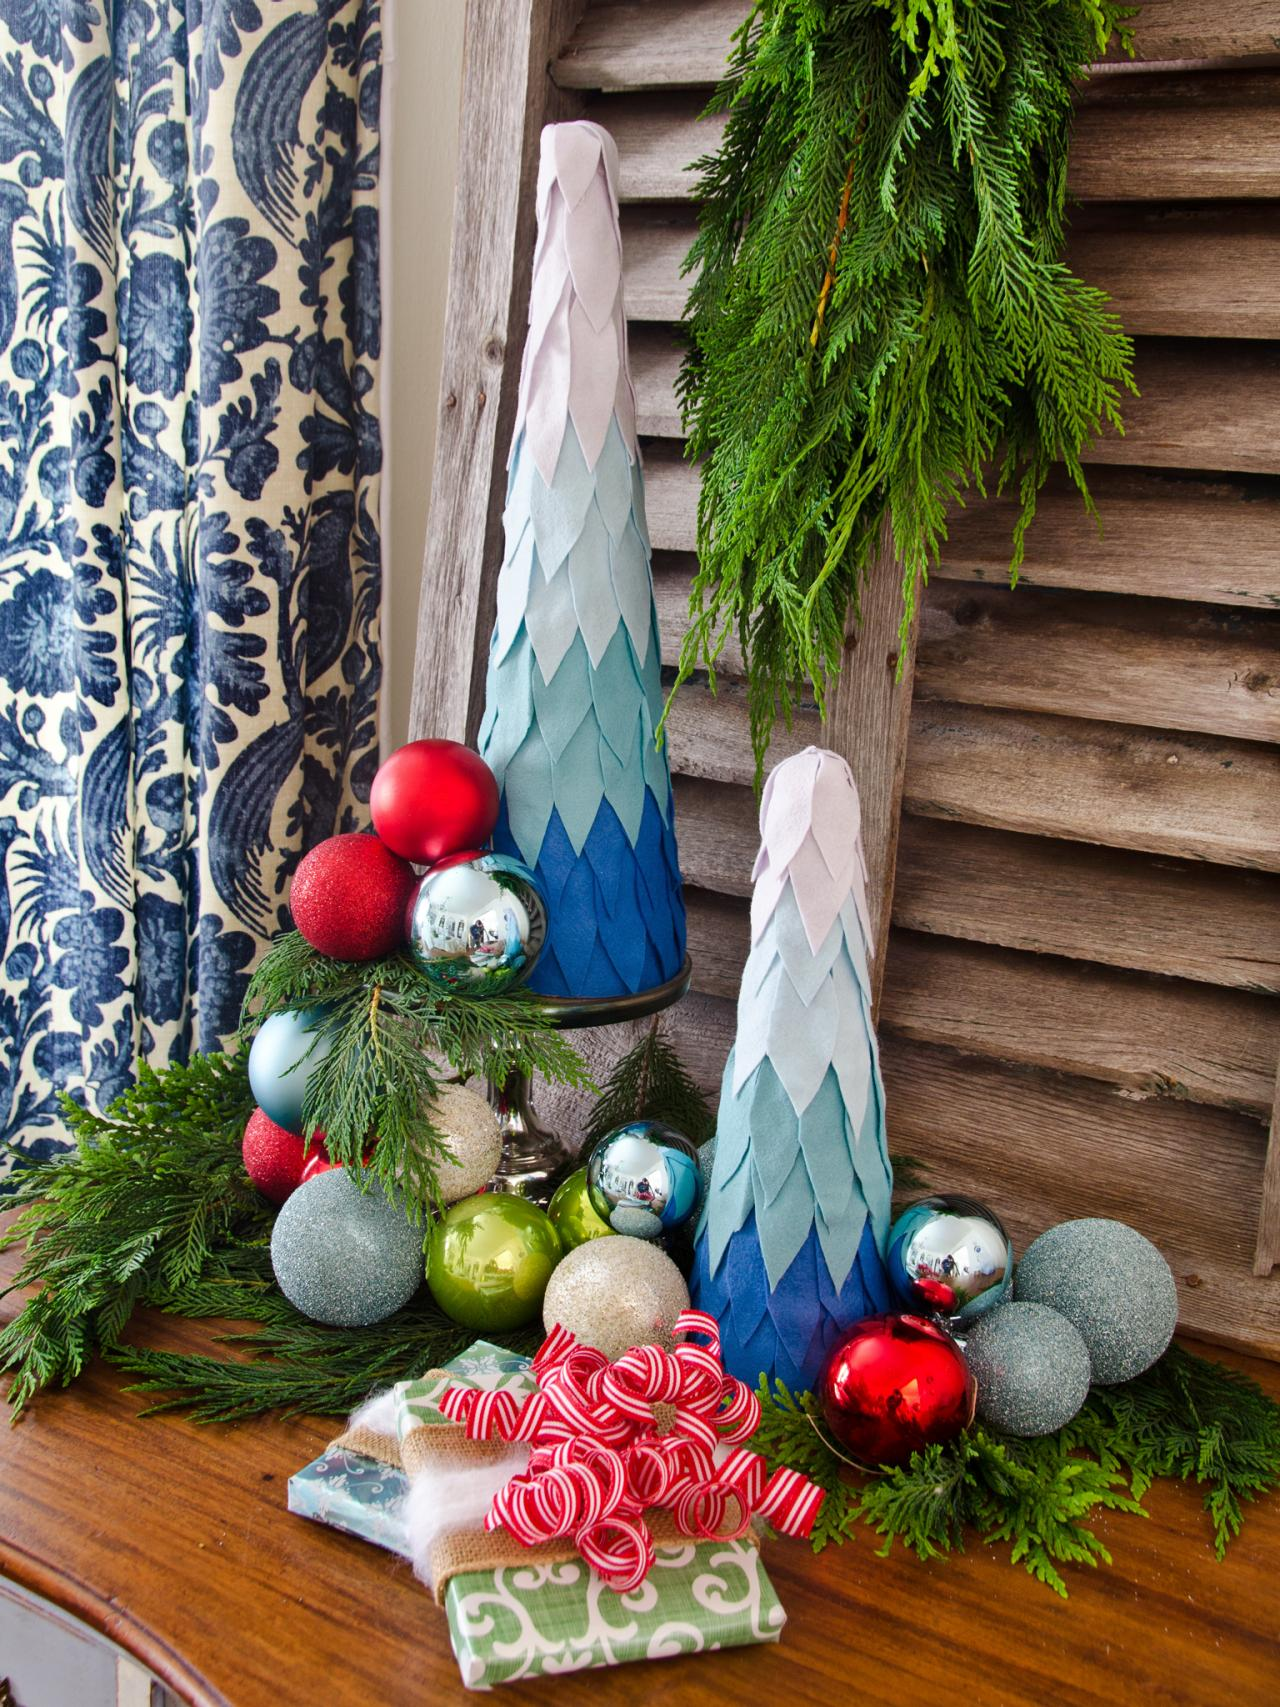 Ombre Tabletop Christmas Trees | HGTV